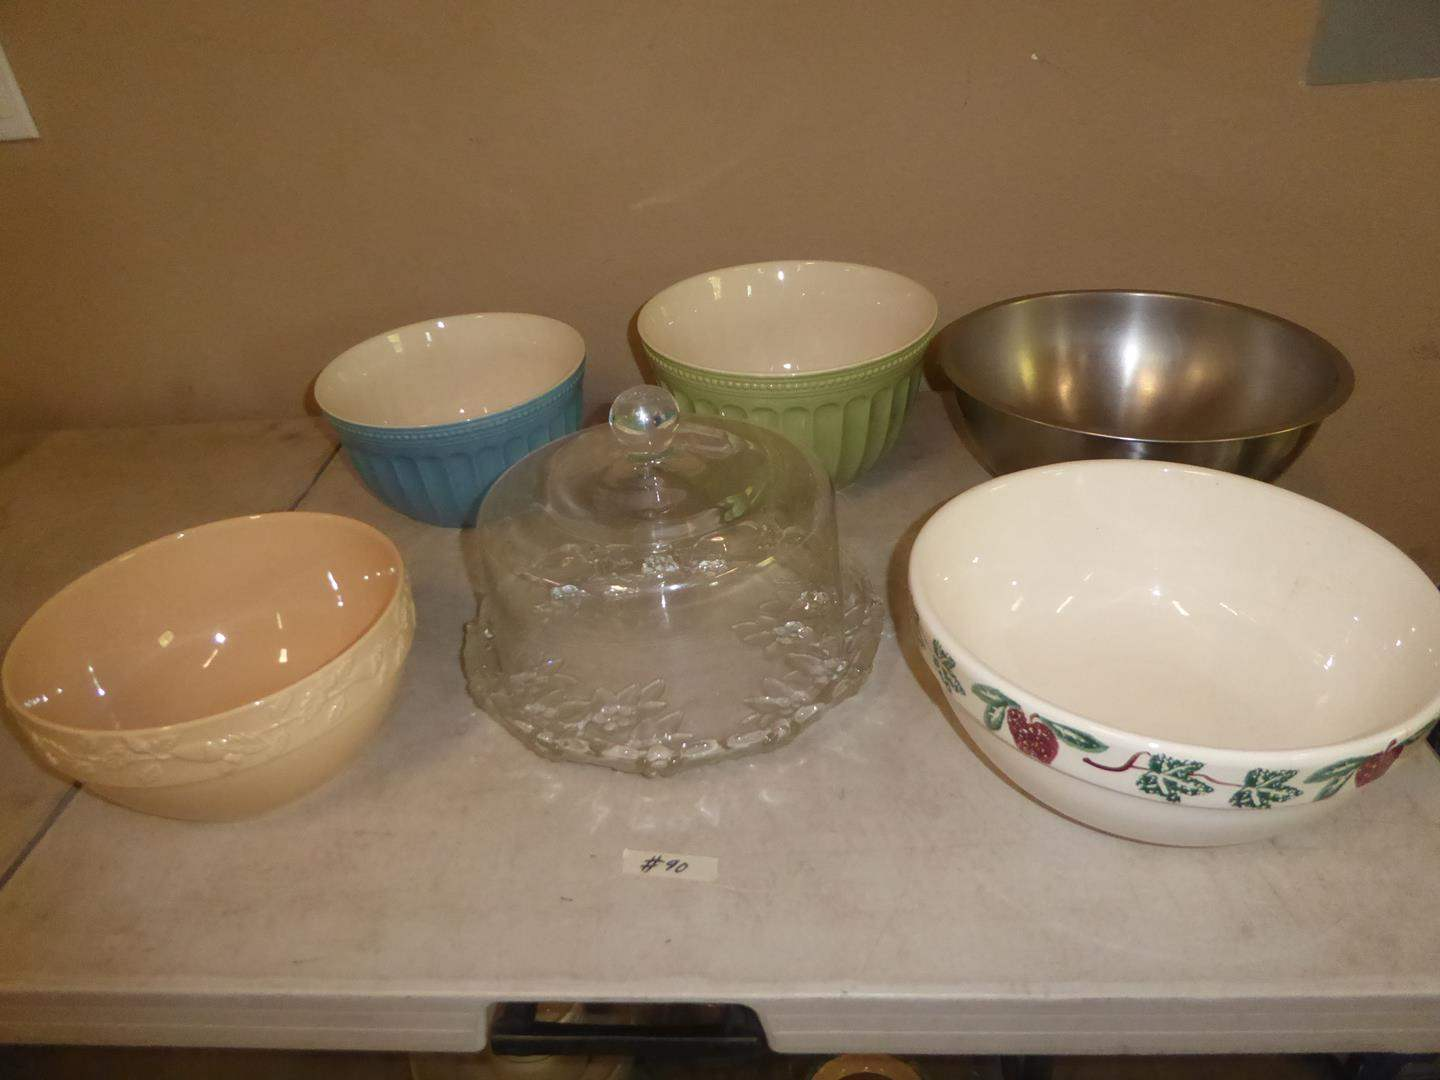 Lot # 90 - Ceramic Serving Bowls, Stainless Mixing Bowl & Glass Cake Plate w/Cover (main image)